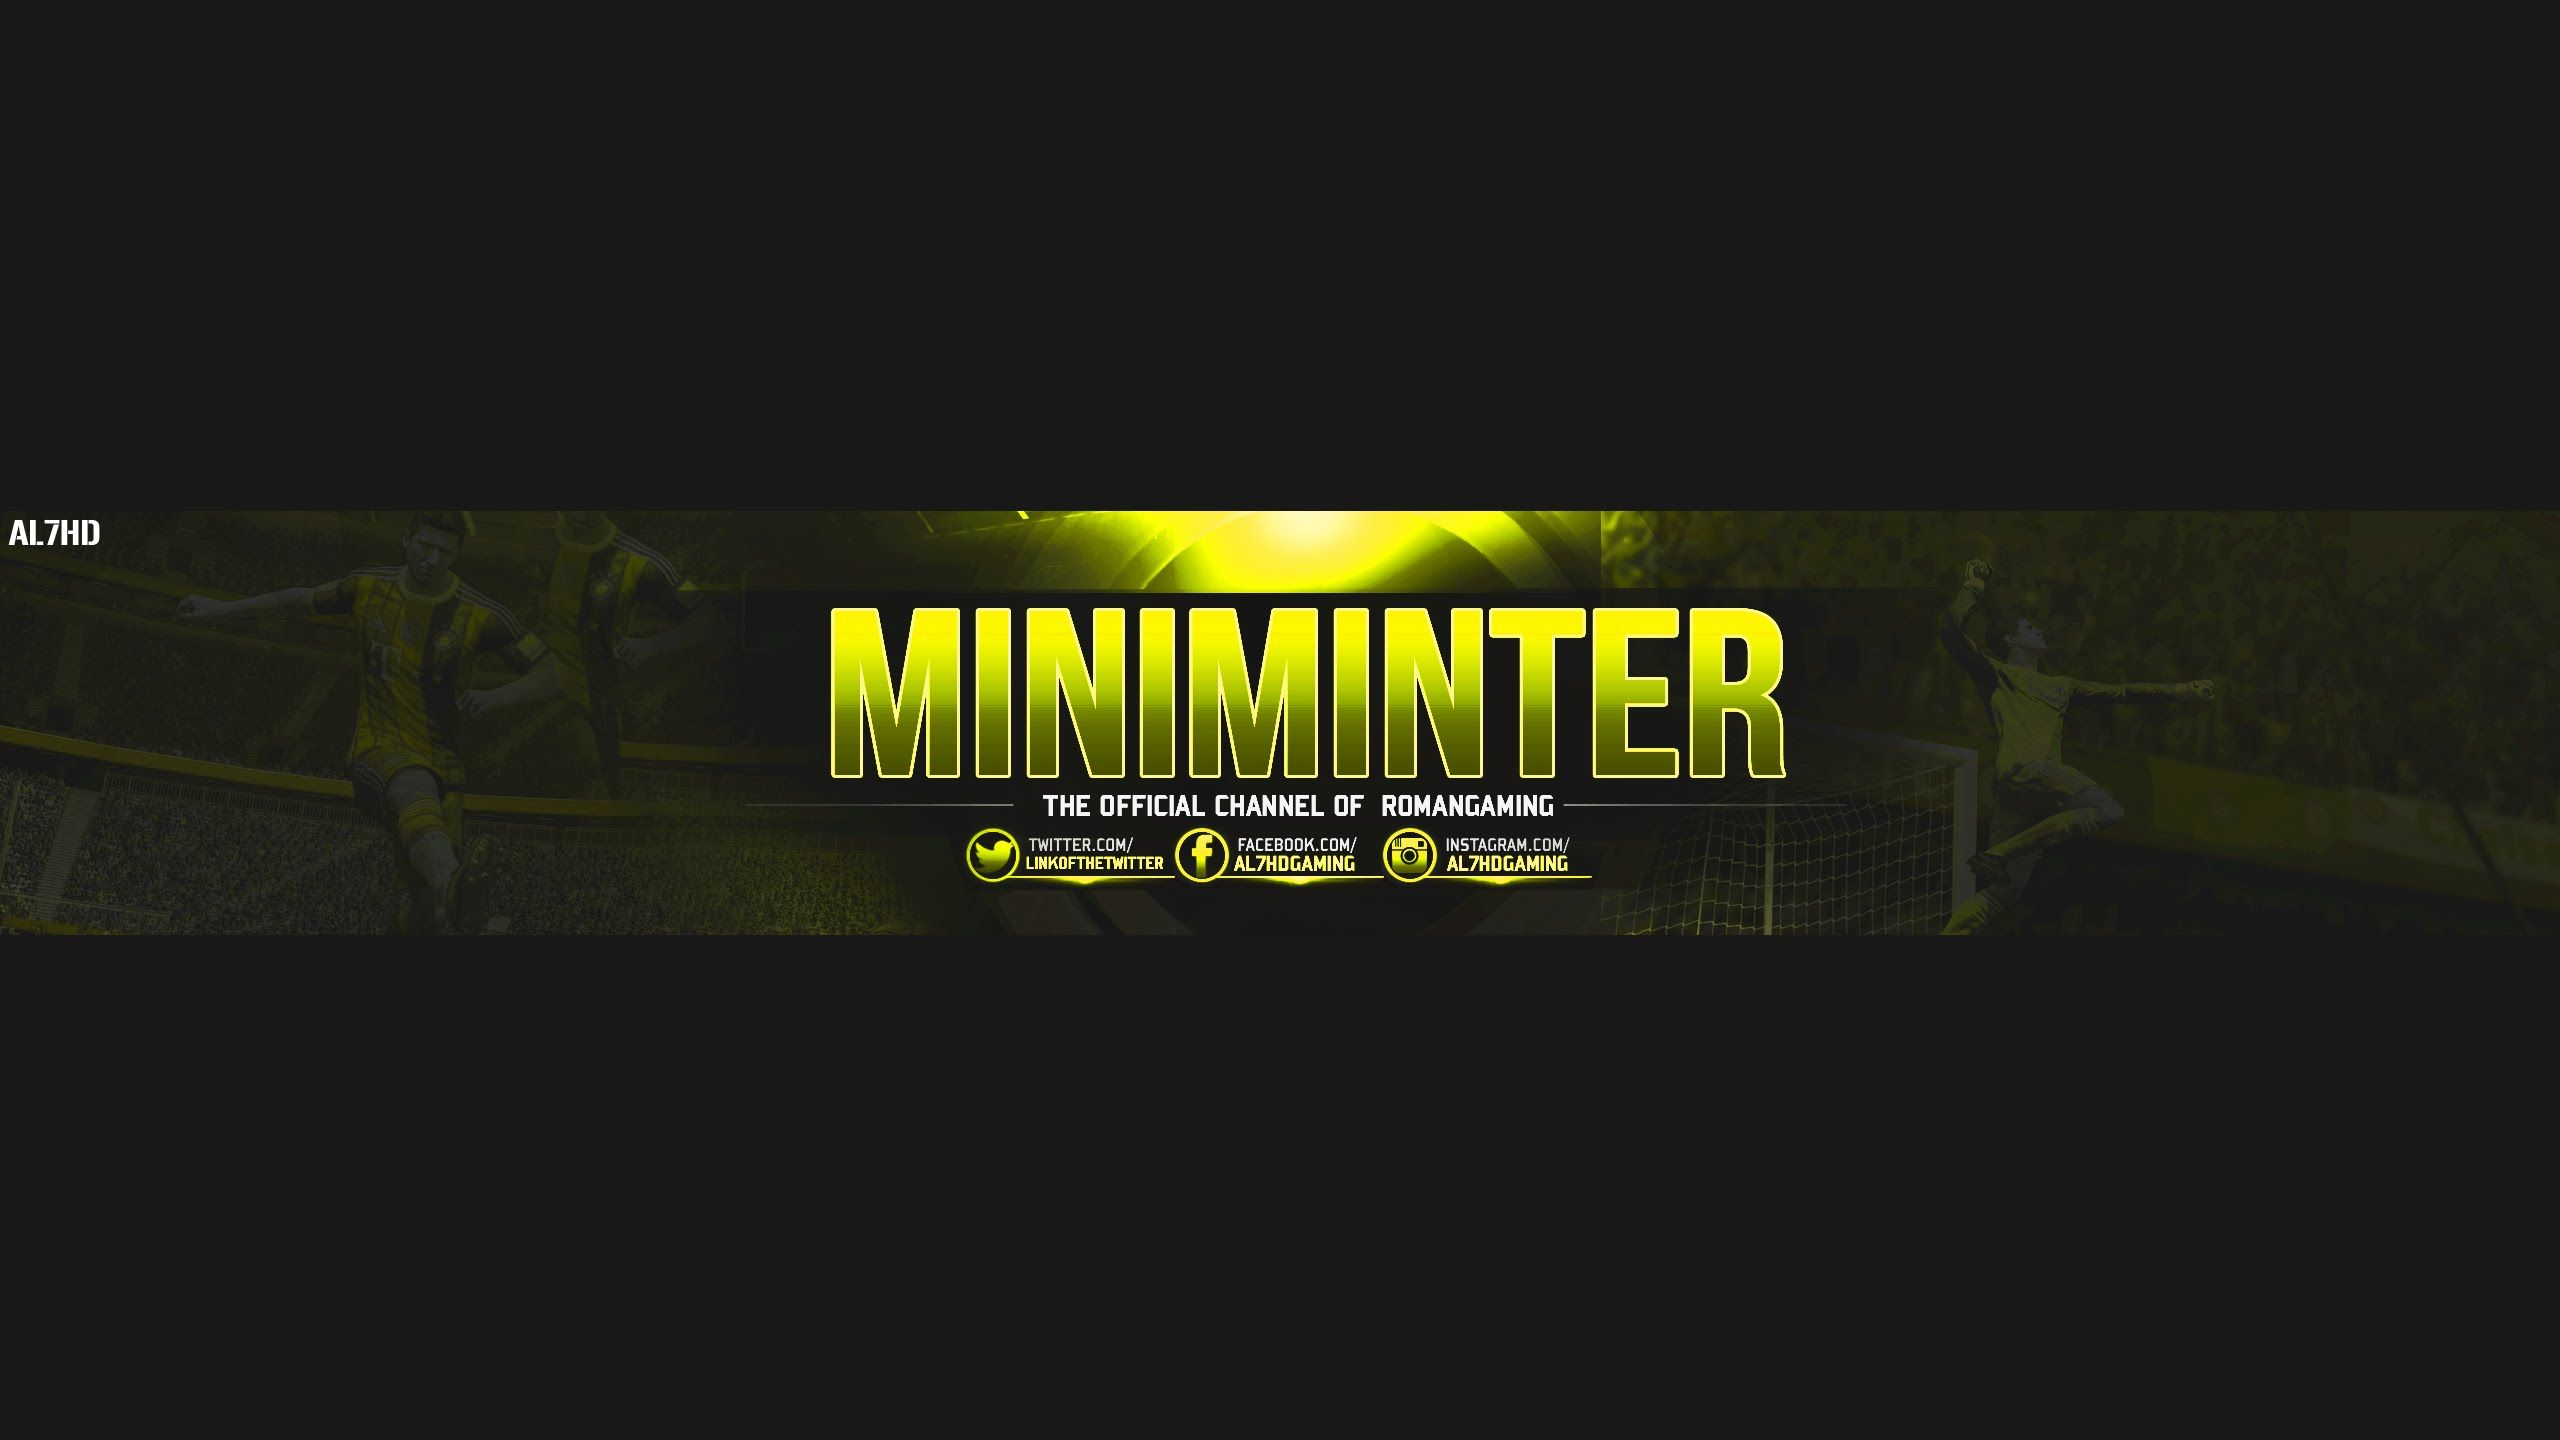 Free Gfx Gaming Youtube Banner Template Free Psd File Miniminter7 Youtube Banner Template Banner Template Diy Banner Template